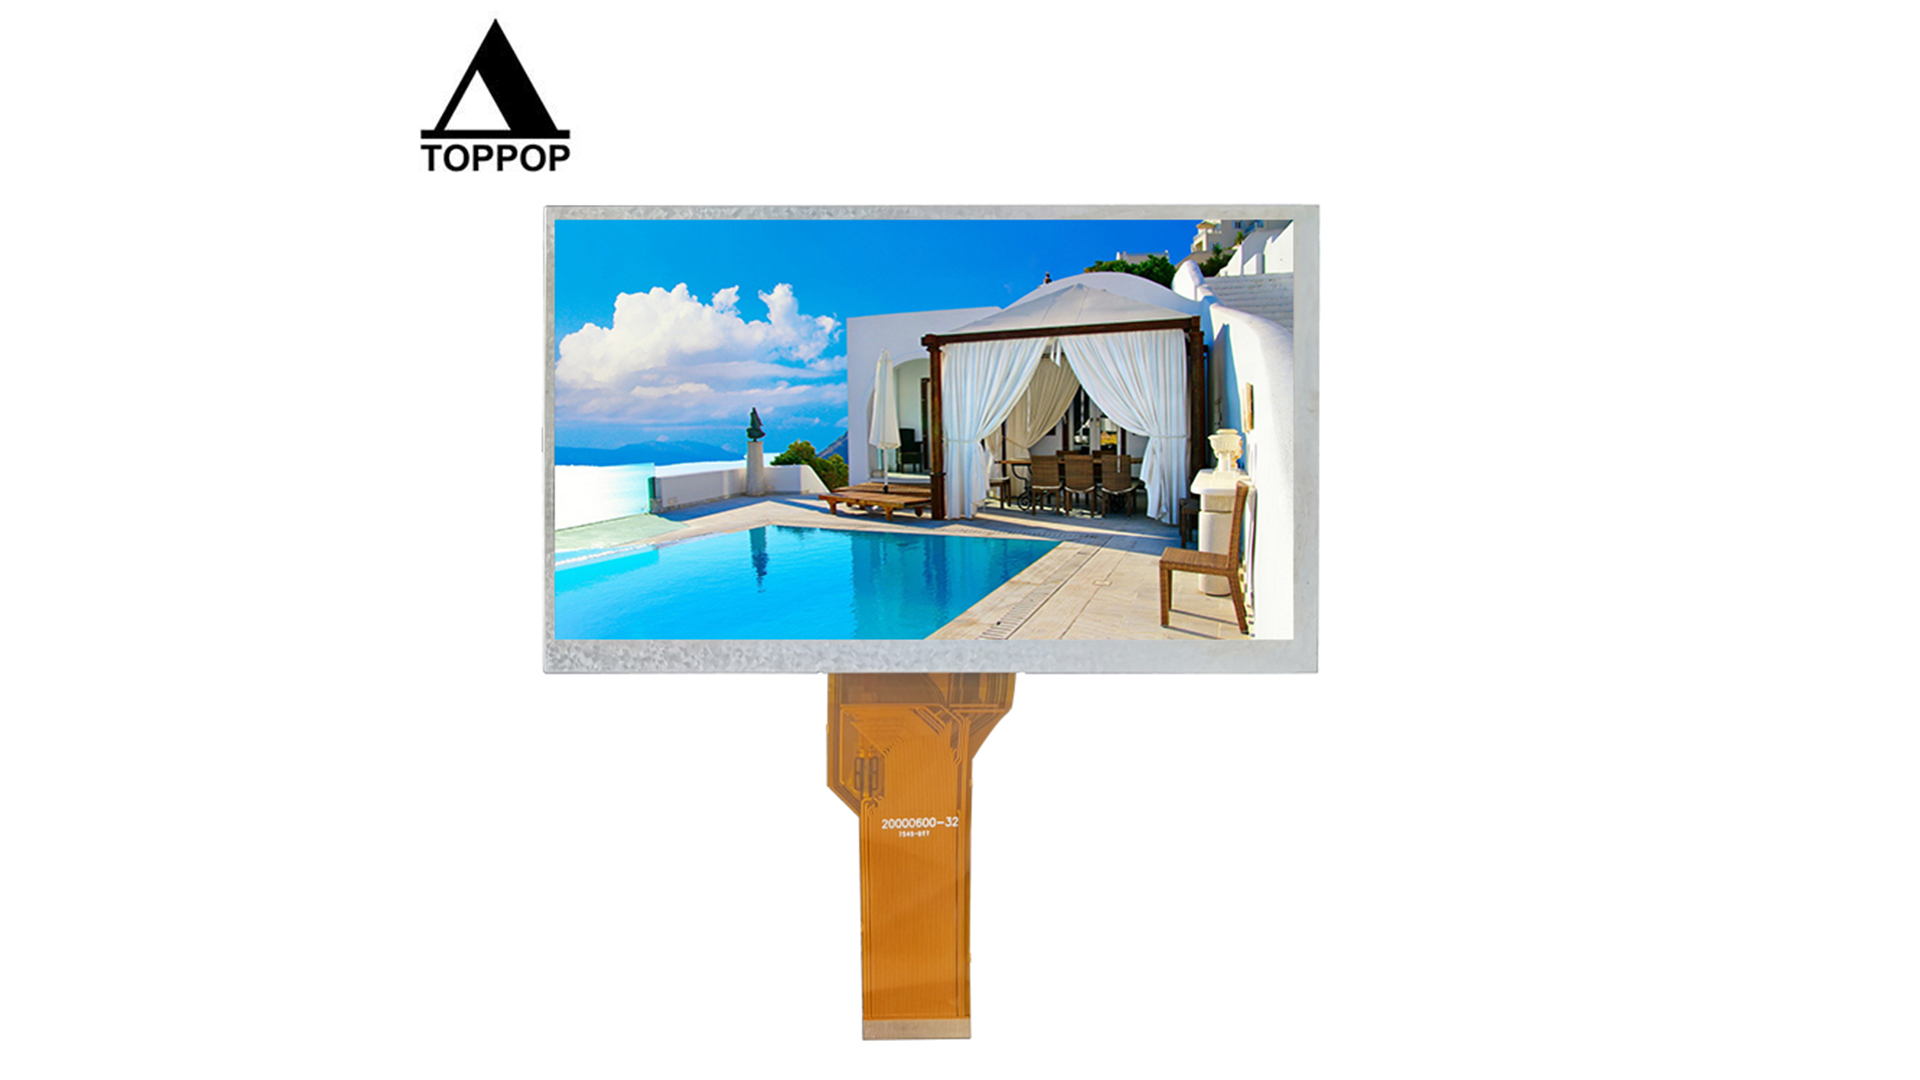 7.0 inch 800*480 TFT LCD Display 7 inch IPS TN High Brightness LCD Module Touch Screen RGB Interface with Resistive Capacitive Touch Panel CTP Customization OEM ODM Factory Optional toppoplcd